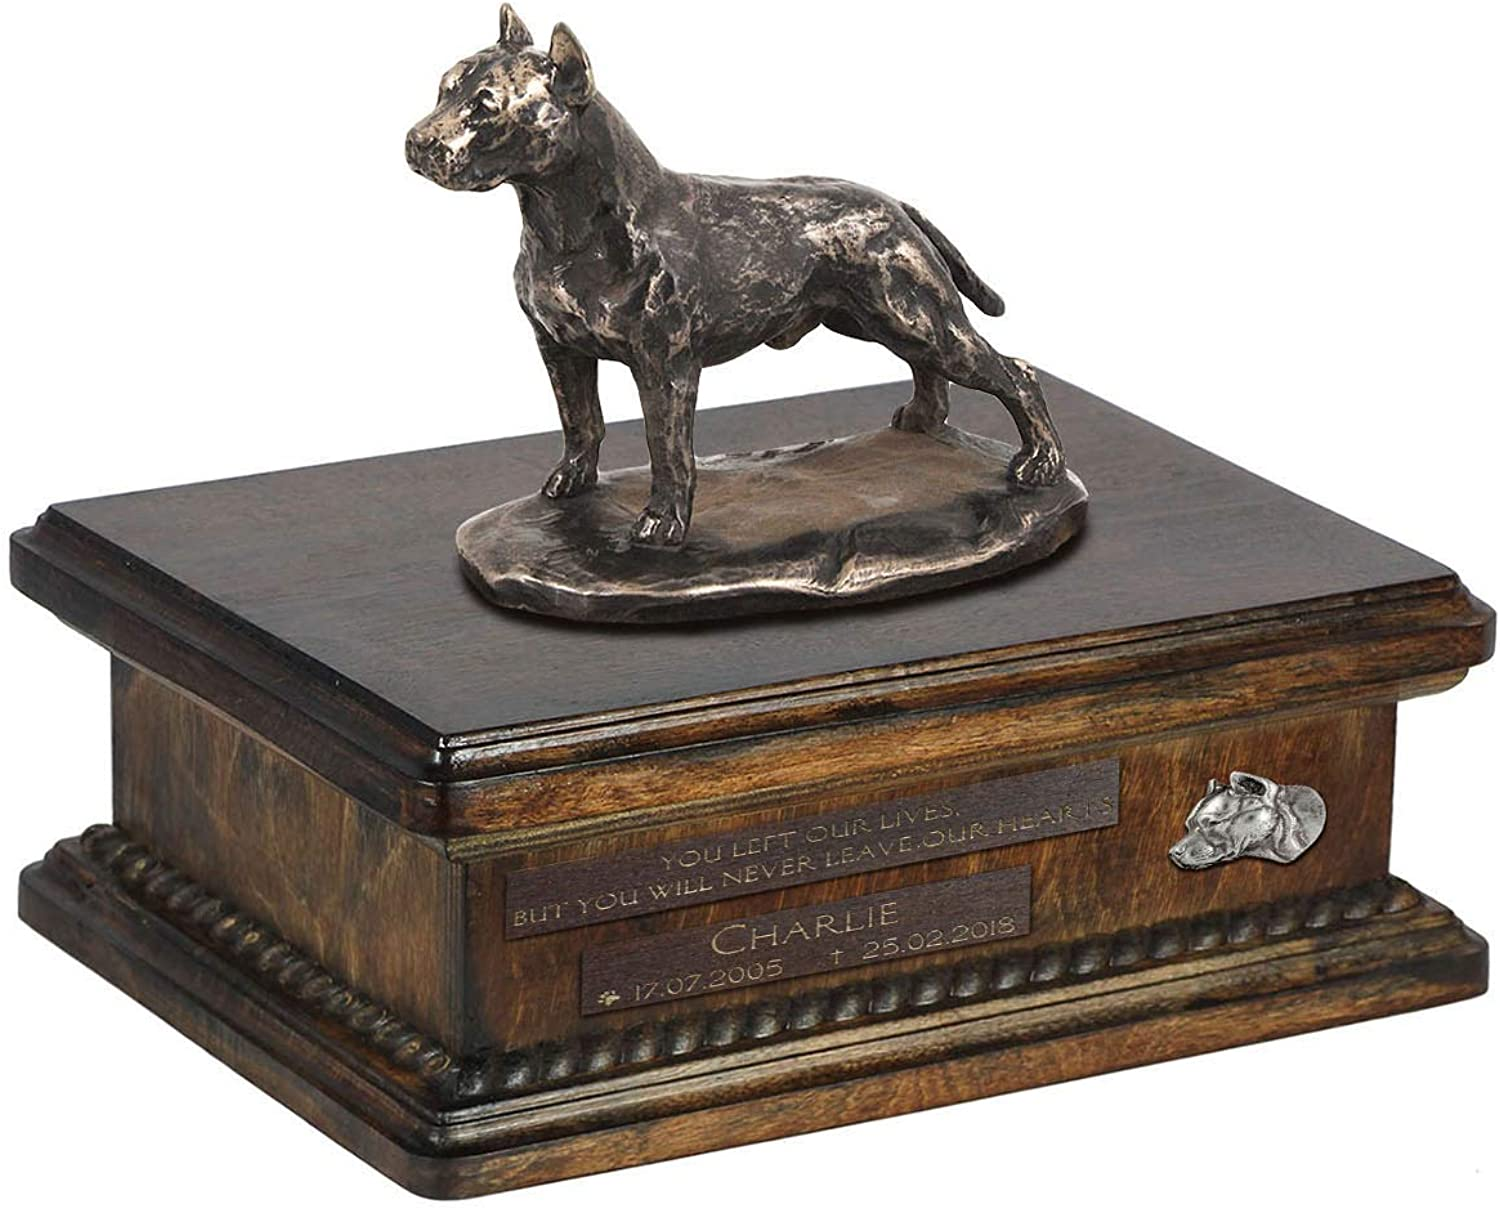 American Staffordshire Terrier 2, Urn for Dog Ashes Memorial with Statue, Pet's Name and Quote  ArtDog Personalized